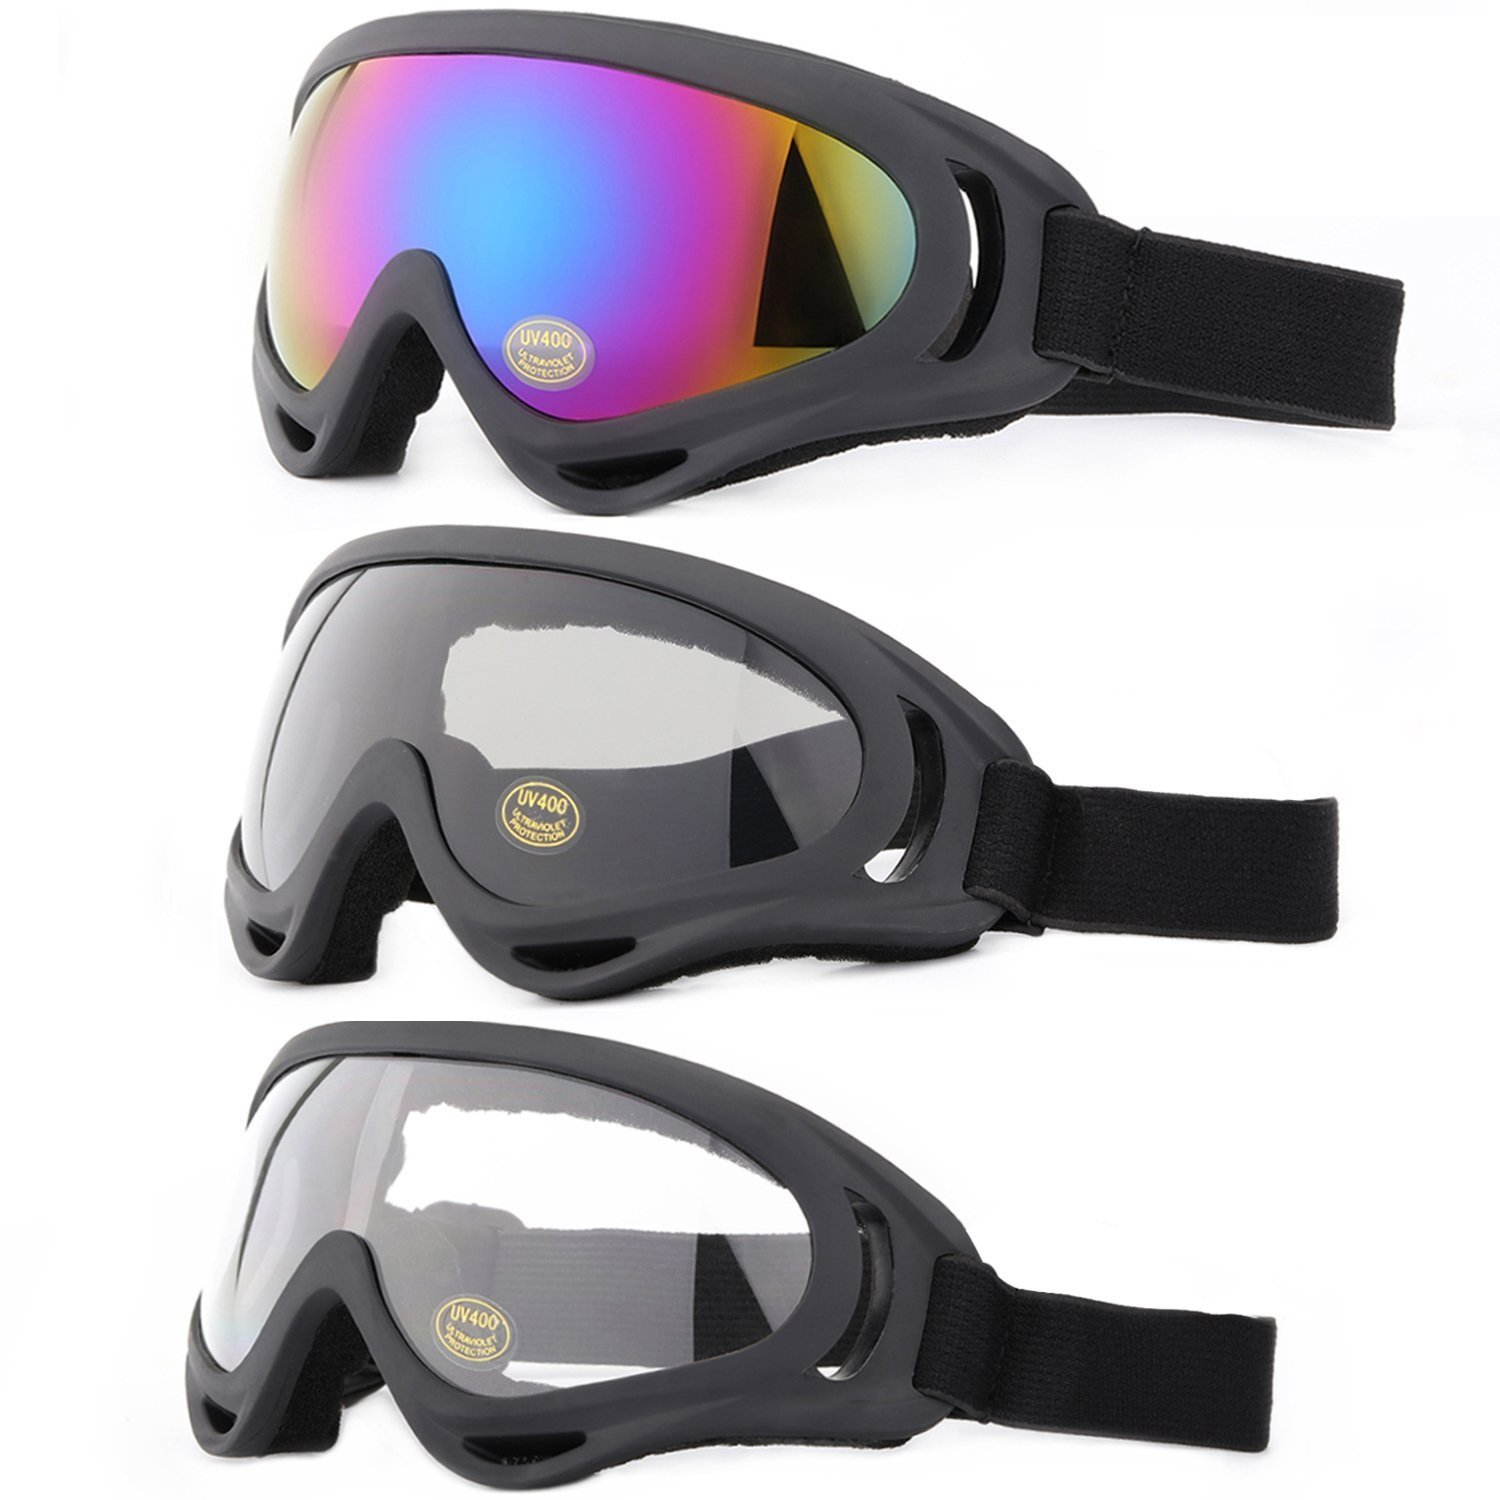 Yidomto Snowboard Protection multicolor Transparent